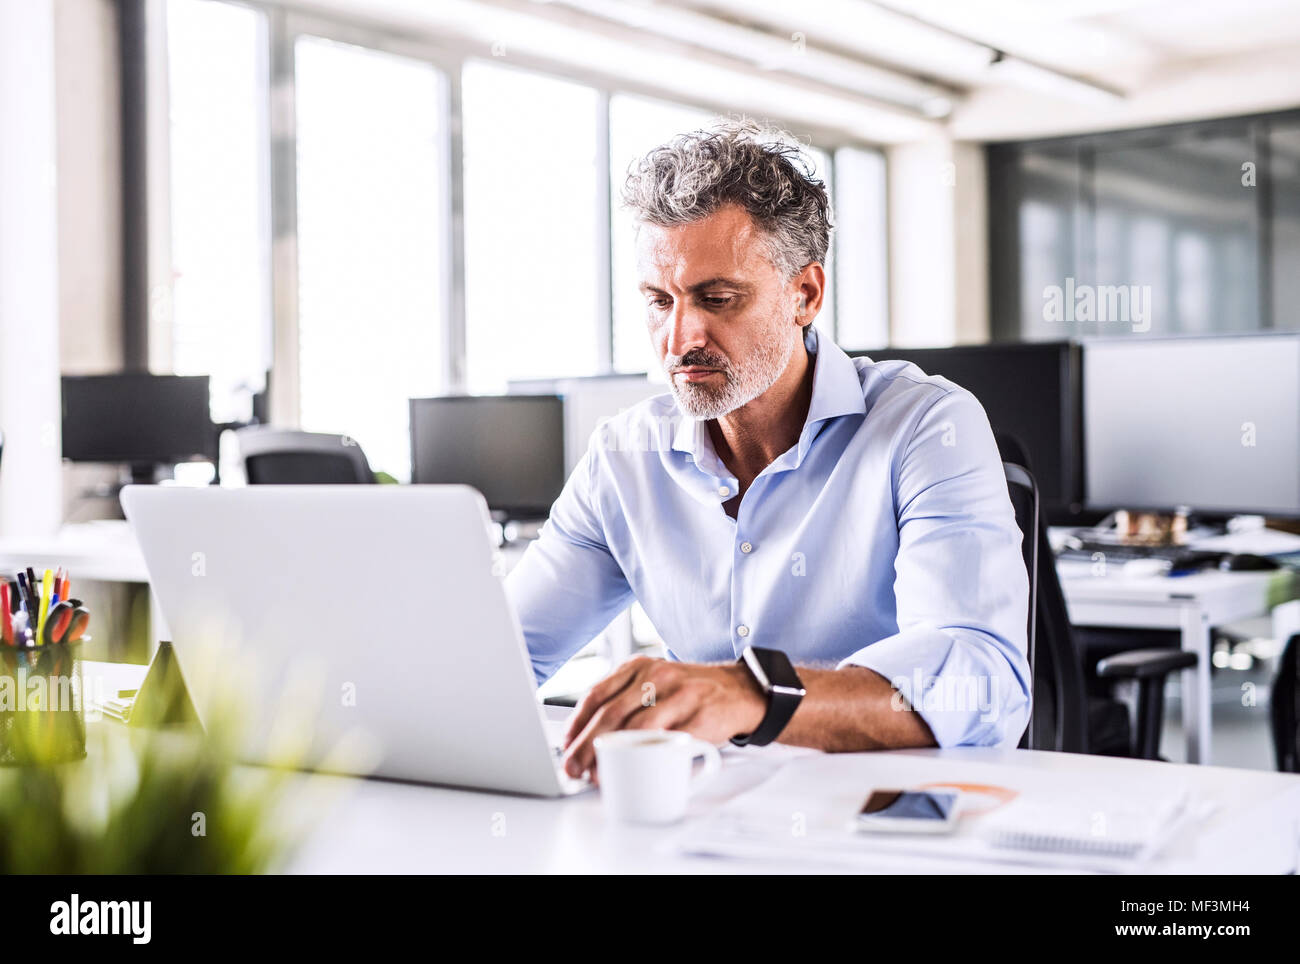 Mature businessman sitting at desk in office using laptop - Stock Image